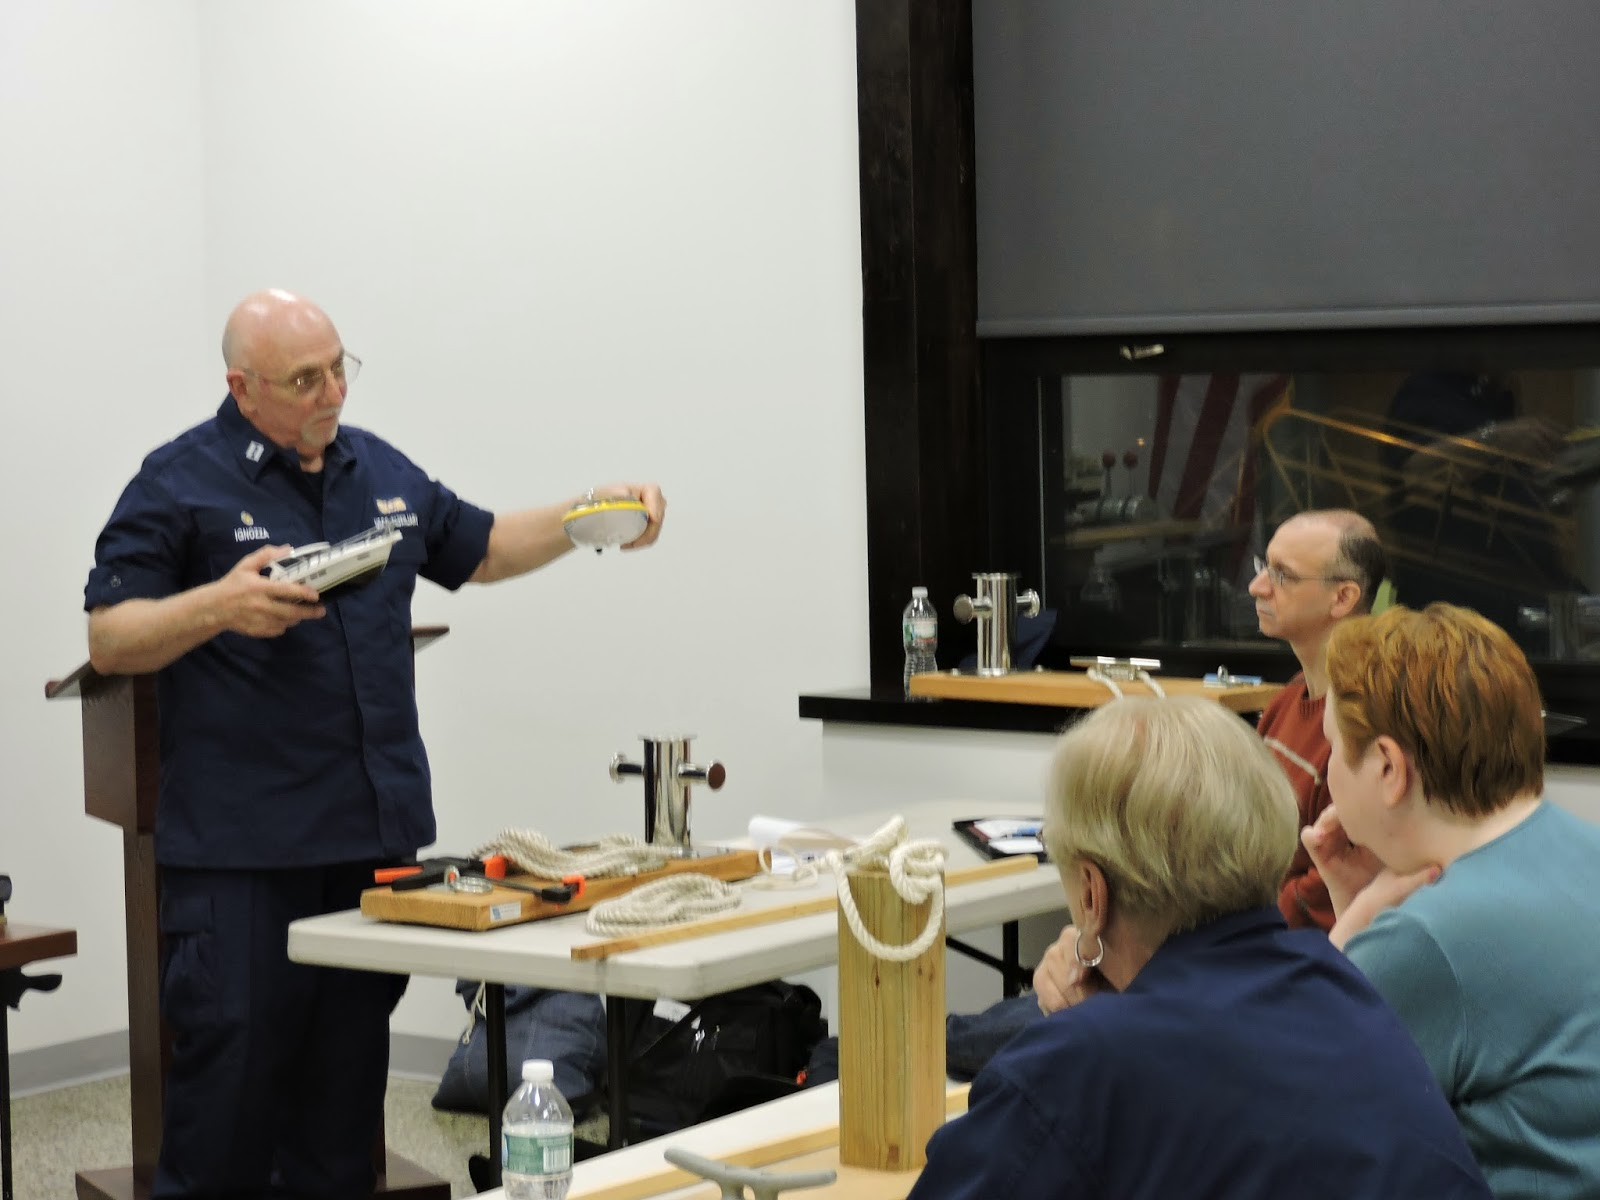 John Ignozza, Instructor from Flotilla 16-07, uses model boats to demonstrate who has to yield the right of way on the water.